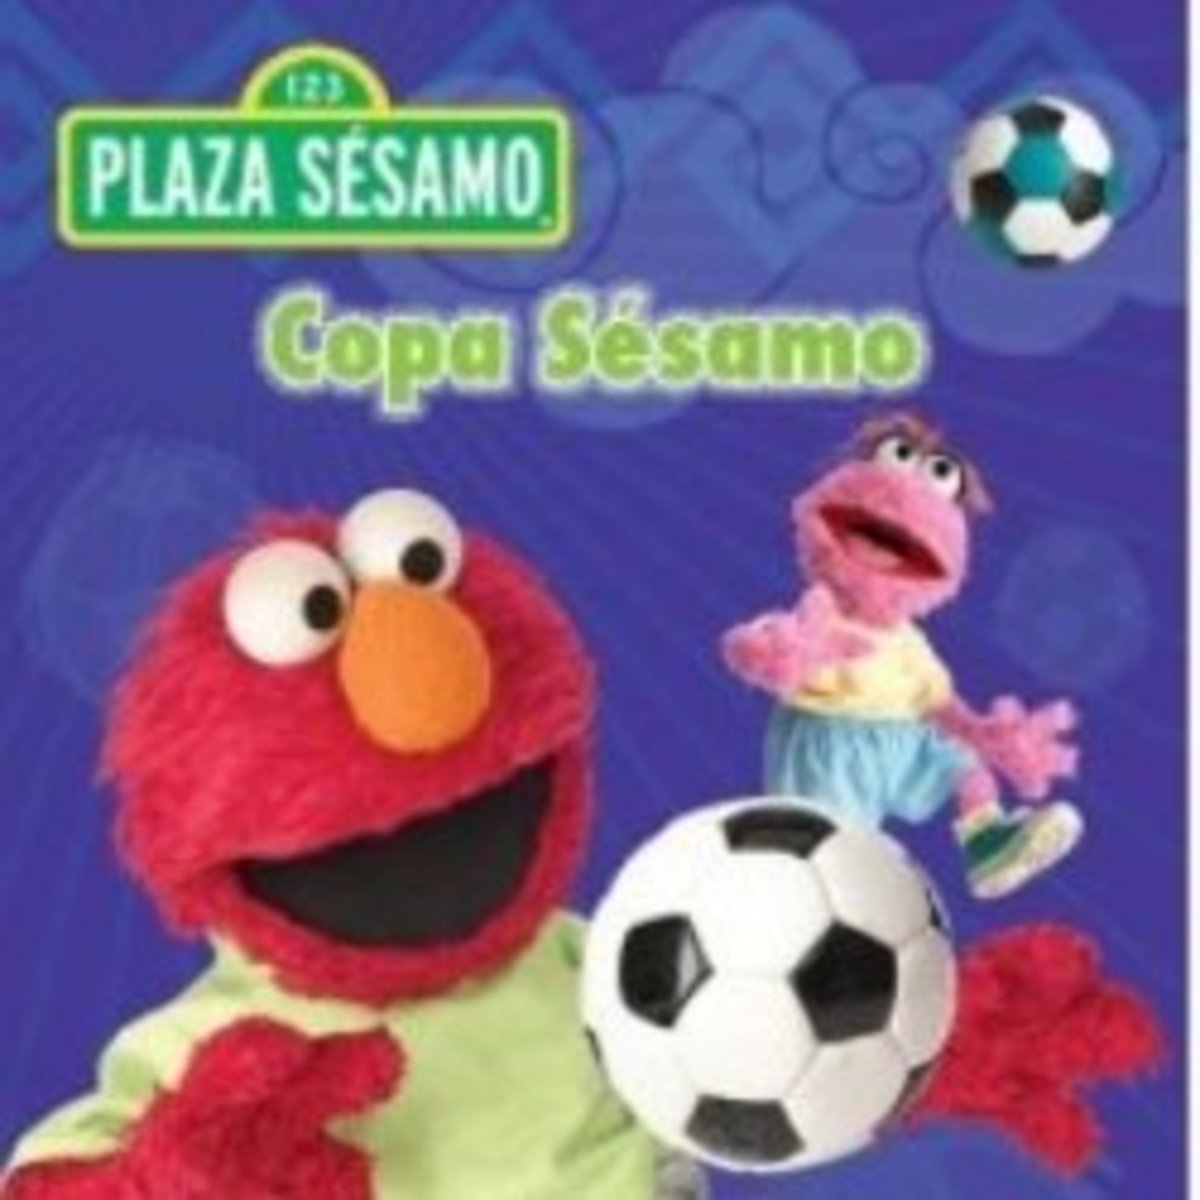 How to Quickly Learn Spanish With Plaza Sesamo Sesame Street Spanish Videos & Songs